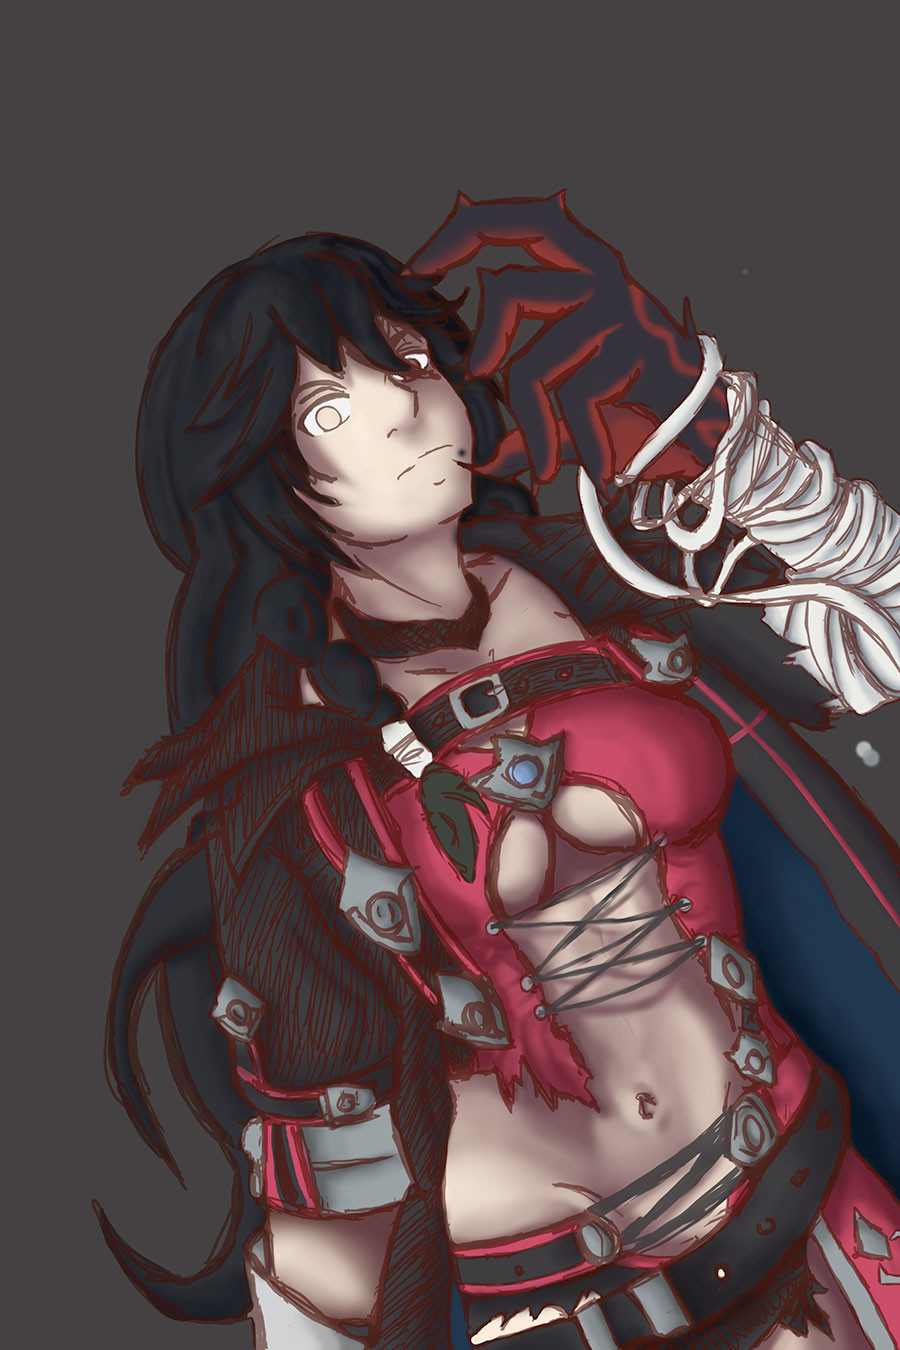 Scarlet Night Therion: Process #2